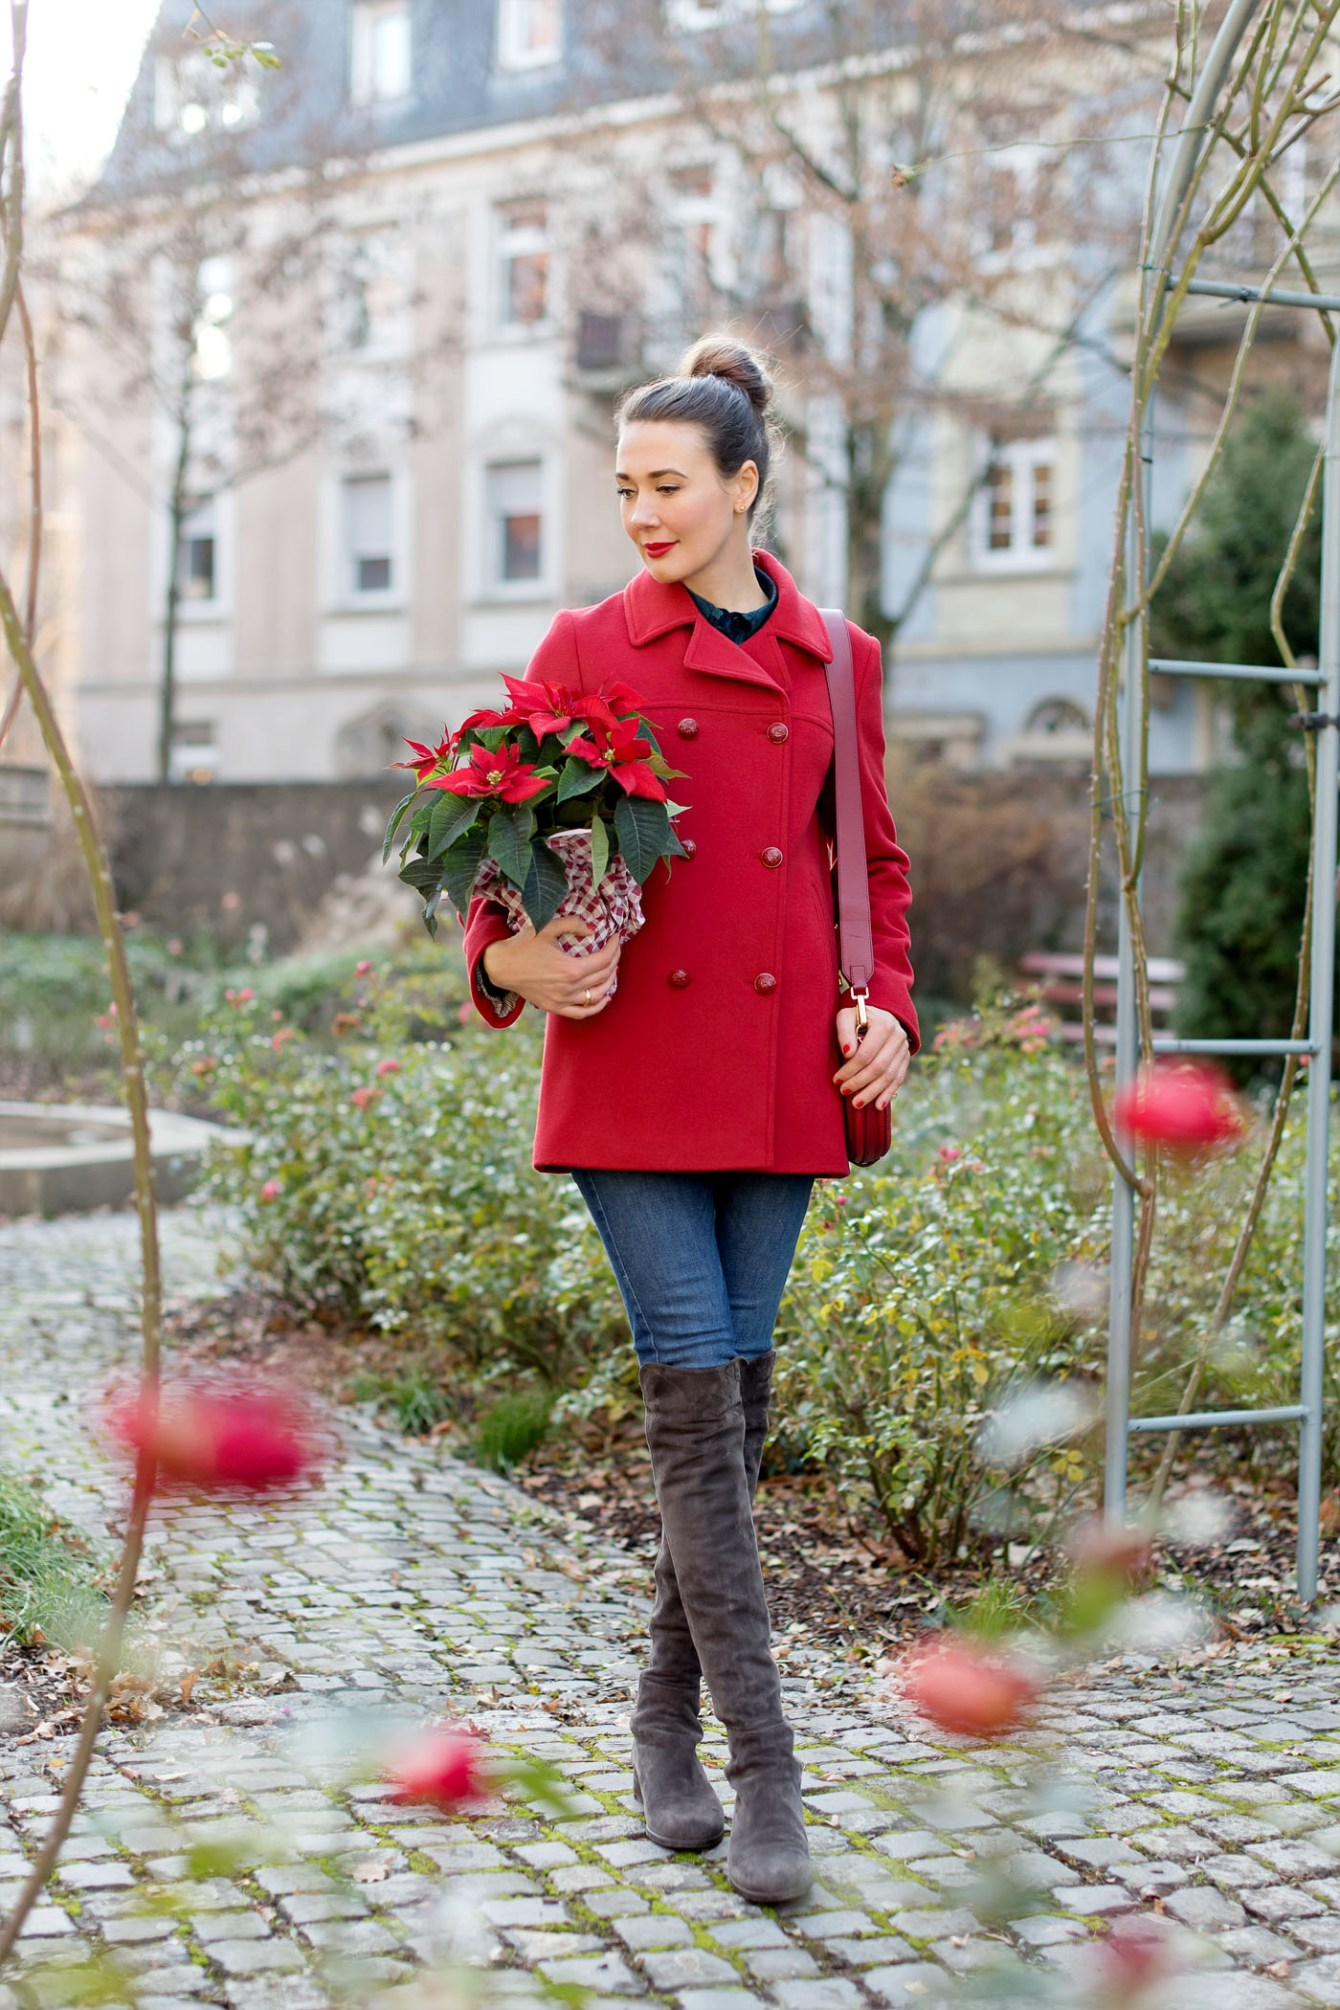 red-woolcoat-armor-lux-wollmantel-stuart-weitzman-overknee-boots-furla-bag-holidays-fashion